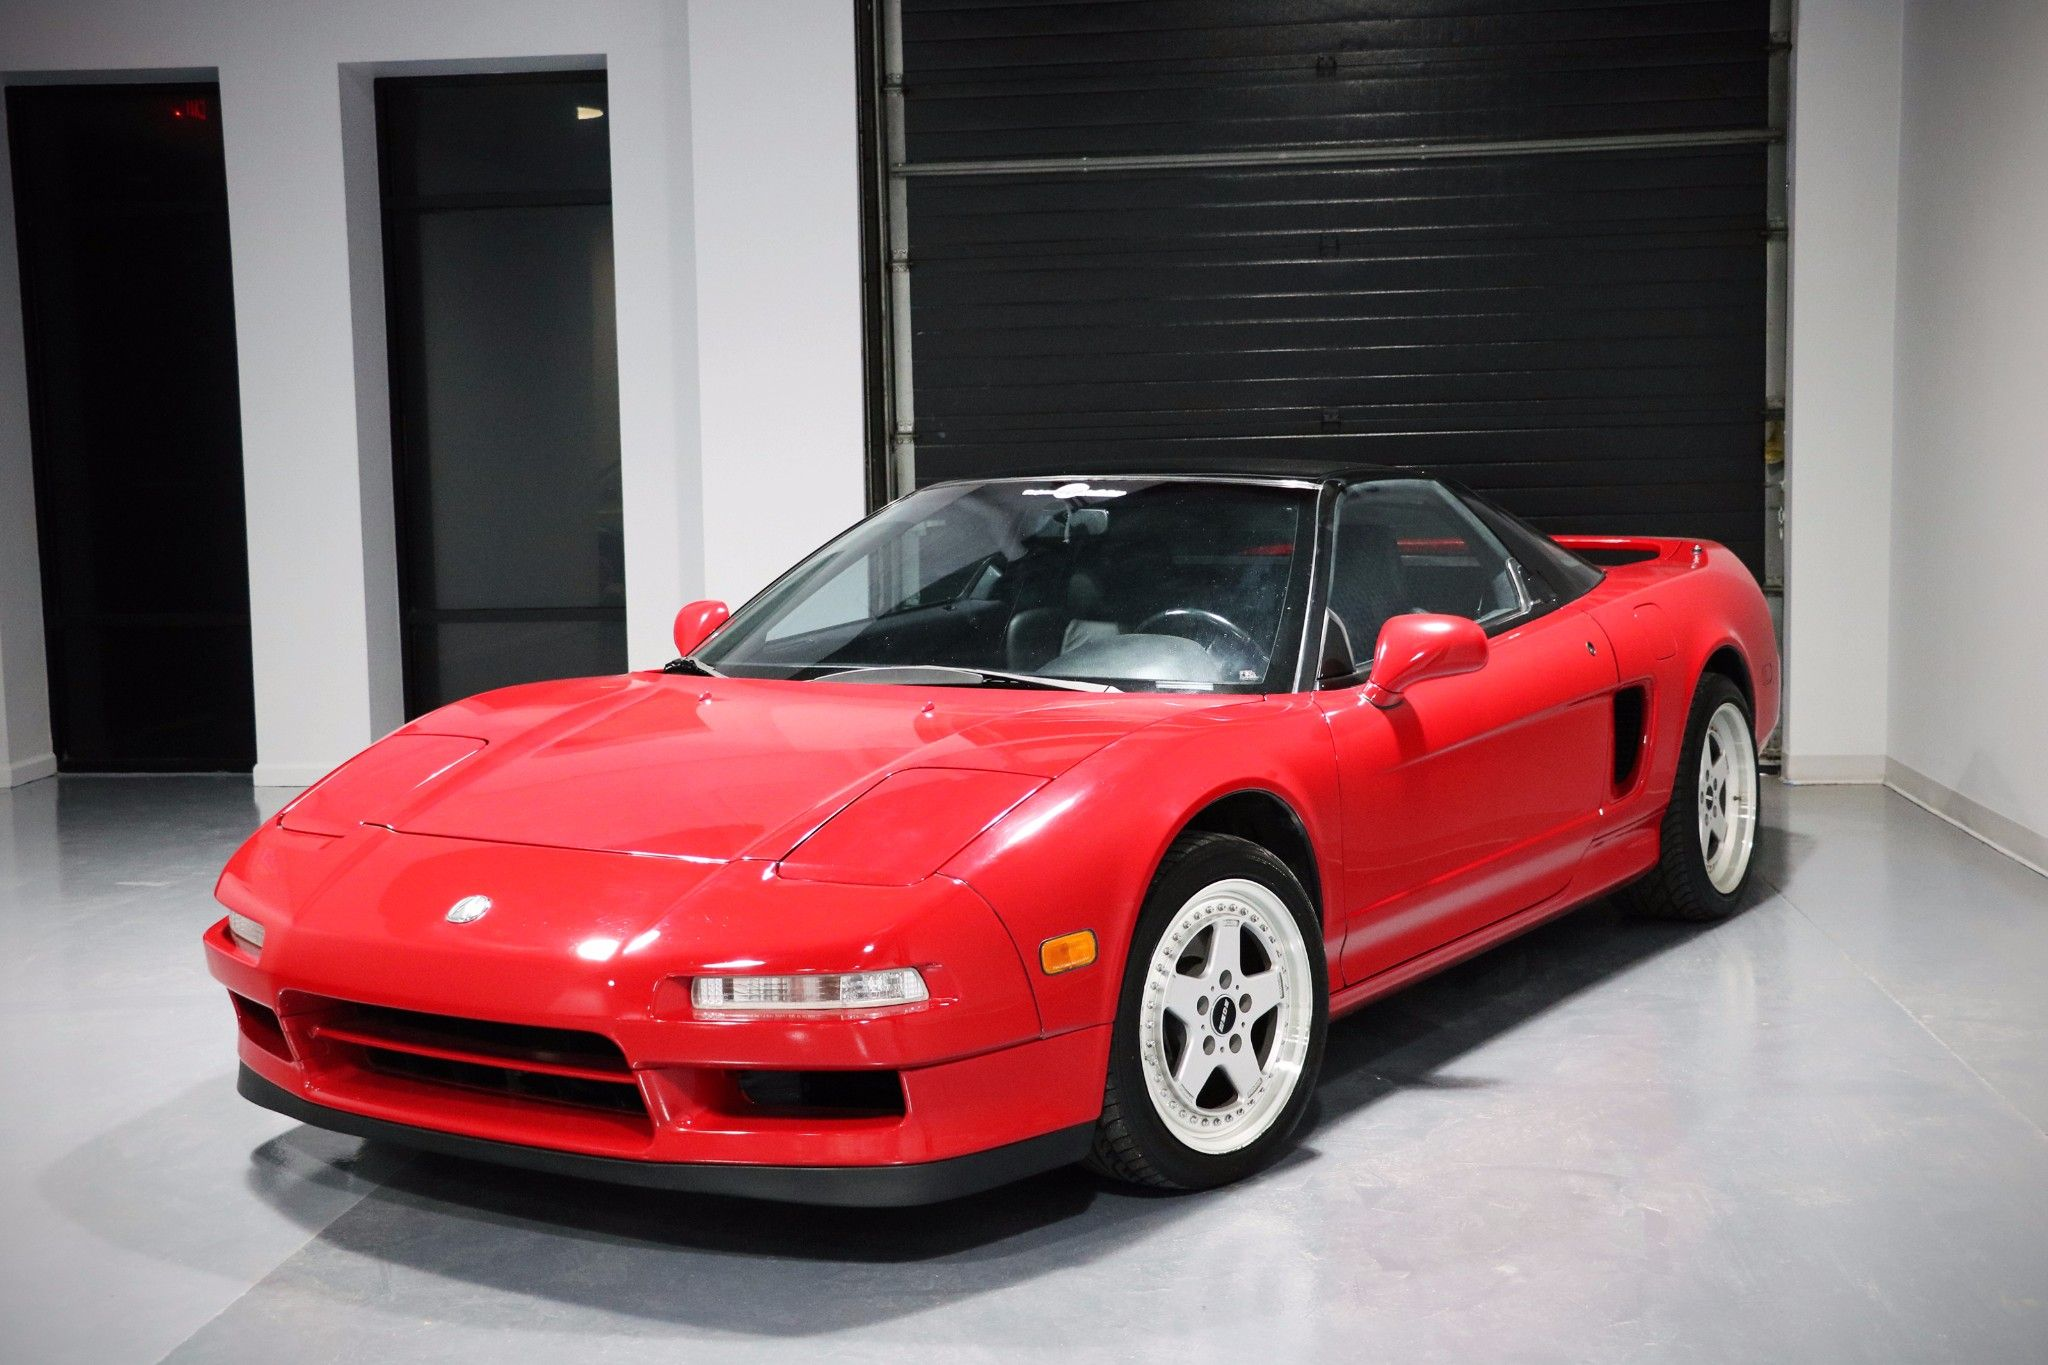 1991 Acura NSX | Vehicles of the Mind | Pinterest | Acura nsx, Cars on